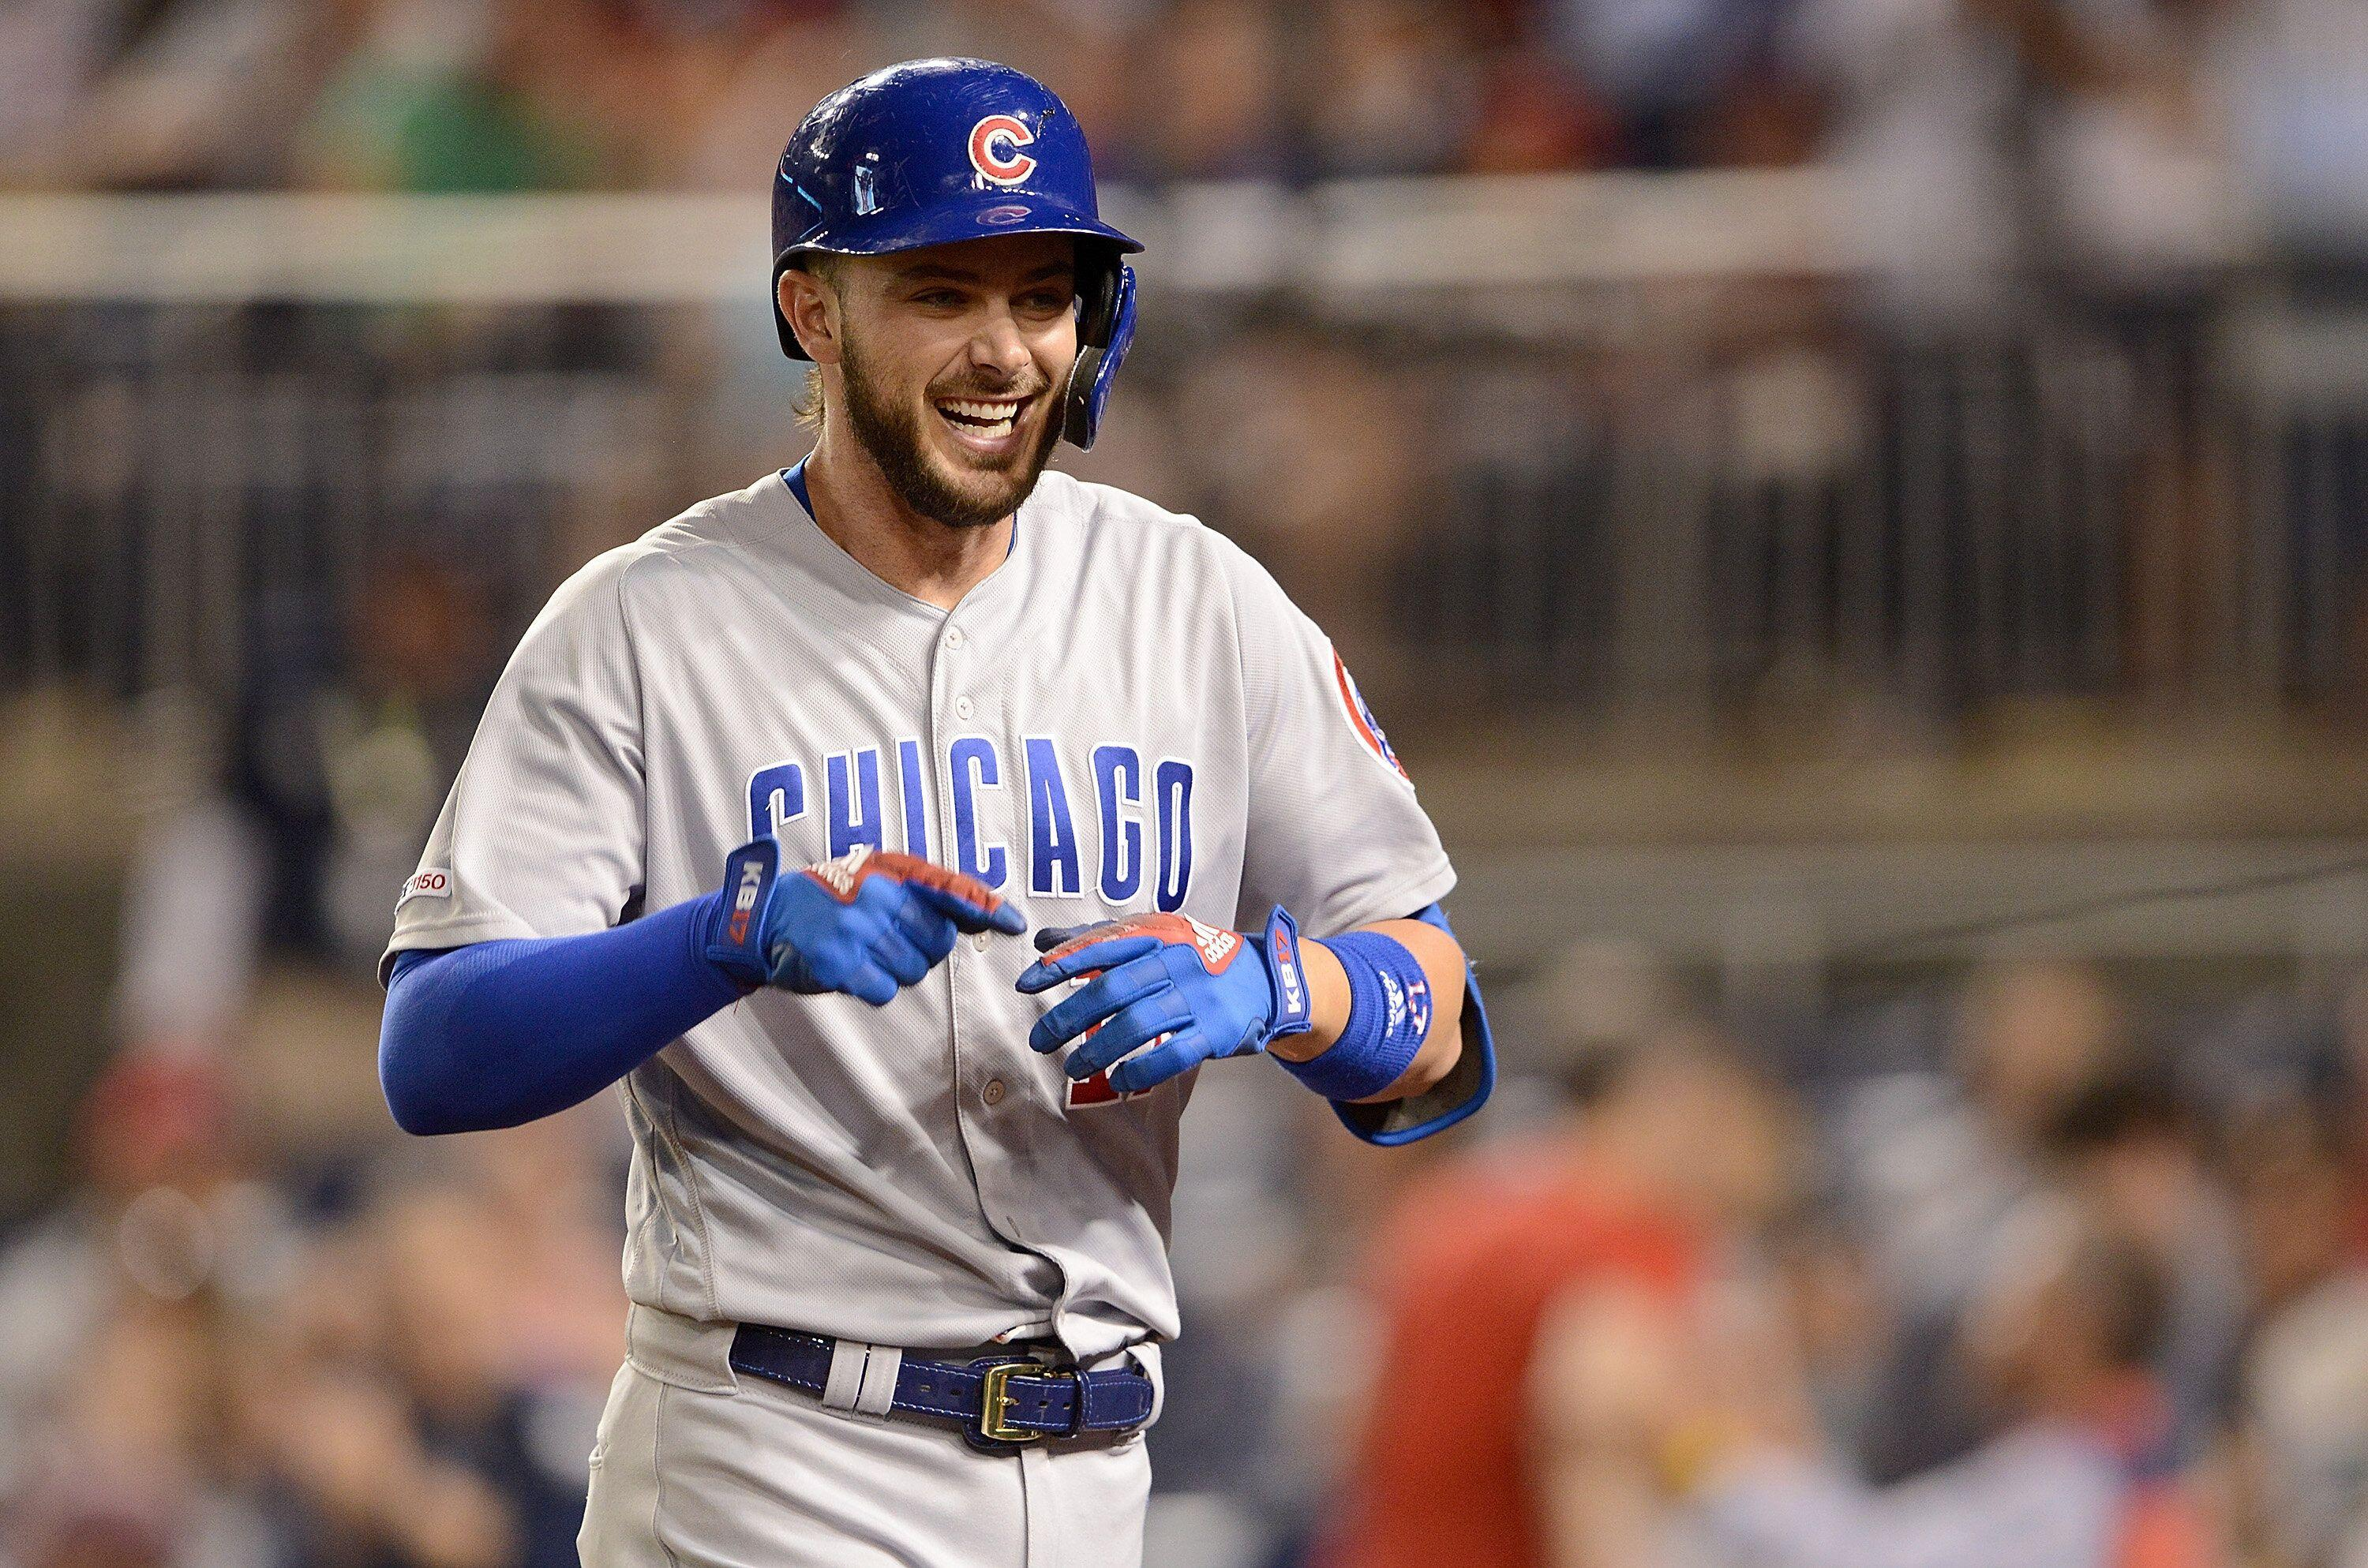 Kris Bryant lights up miserable Nationals bullpen on way to rare homer feat